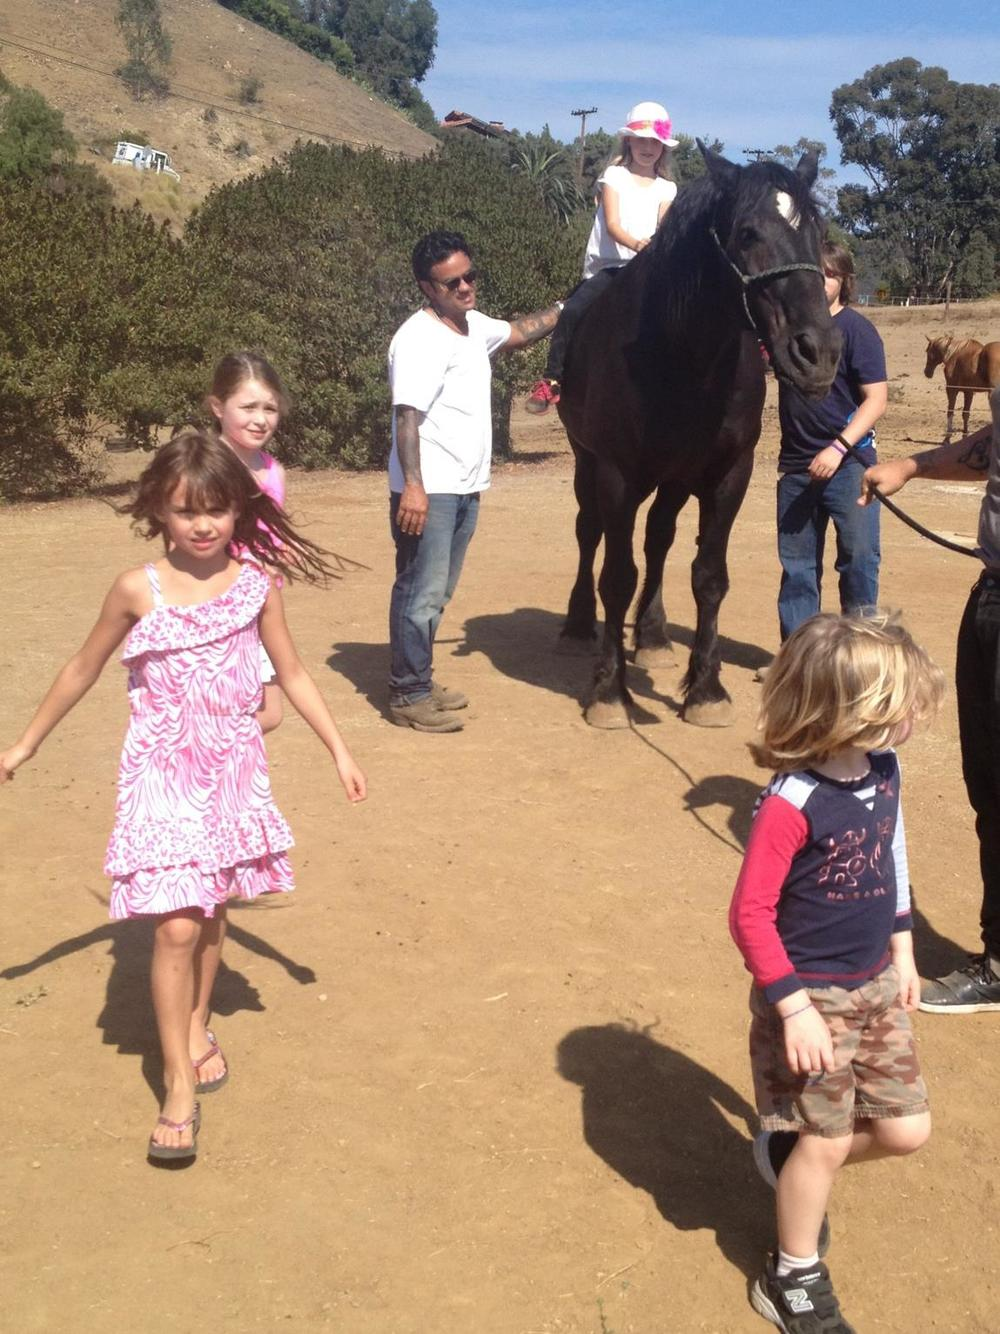 Goliath is the grandson of a very famous racehorse who was pushed extremely hard as a pony. Deceivingly scary, he was quite literally a gentle giant. The children adored riding him bareback and just walking with him.